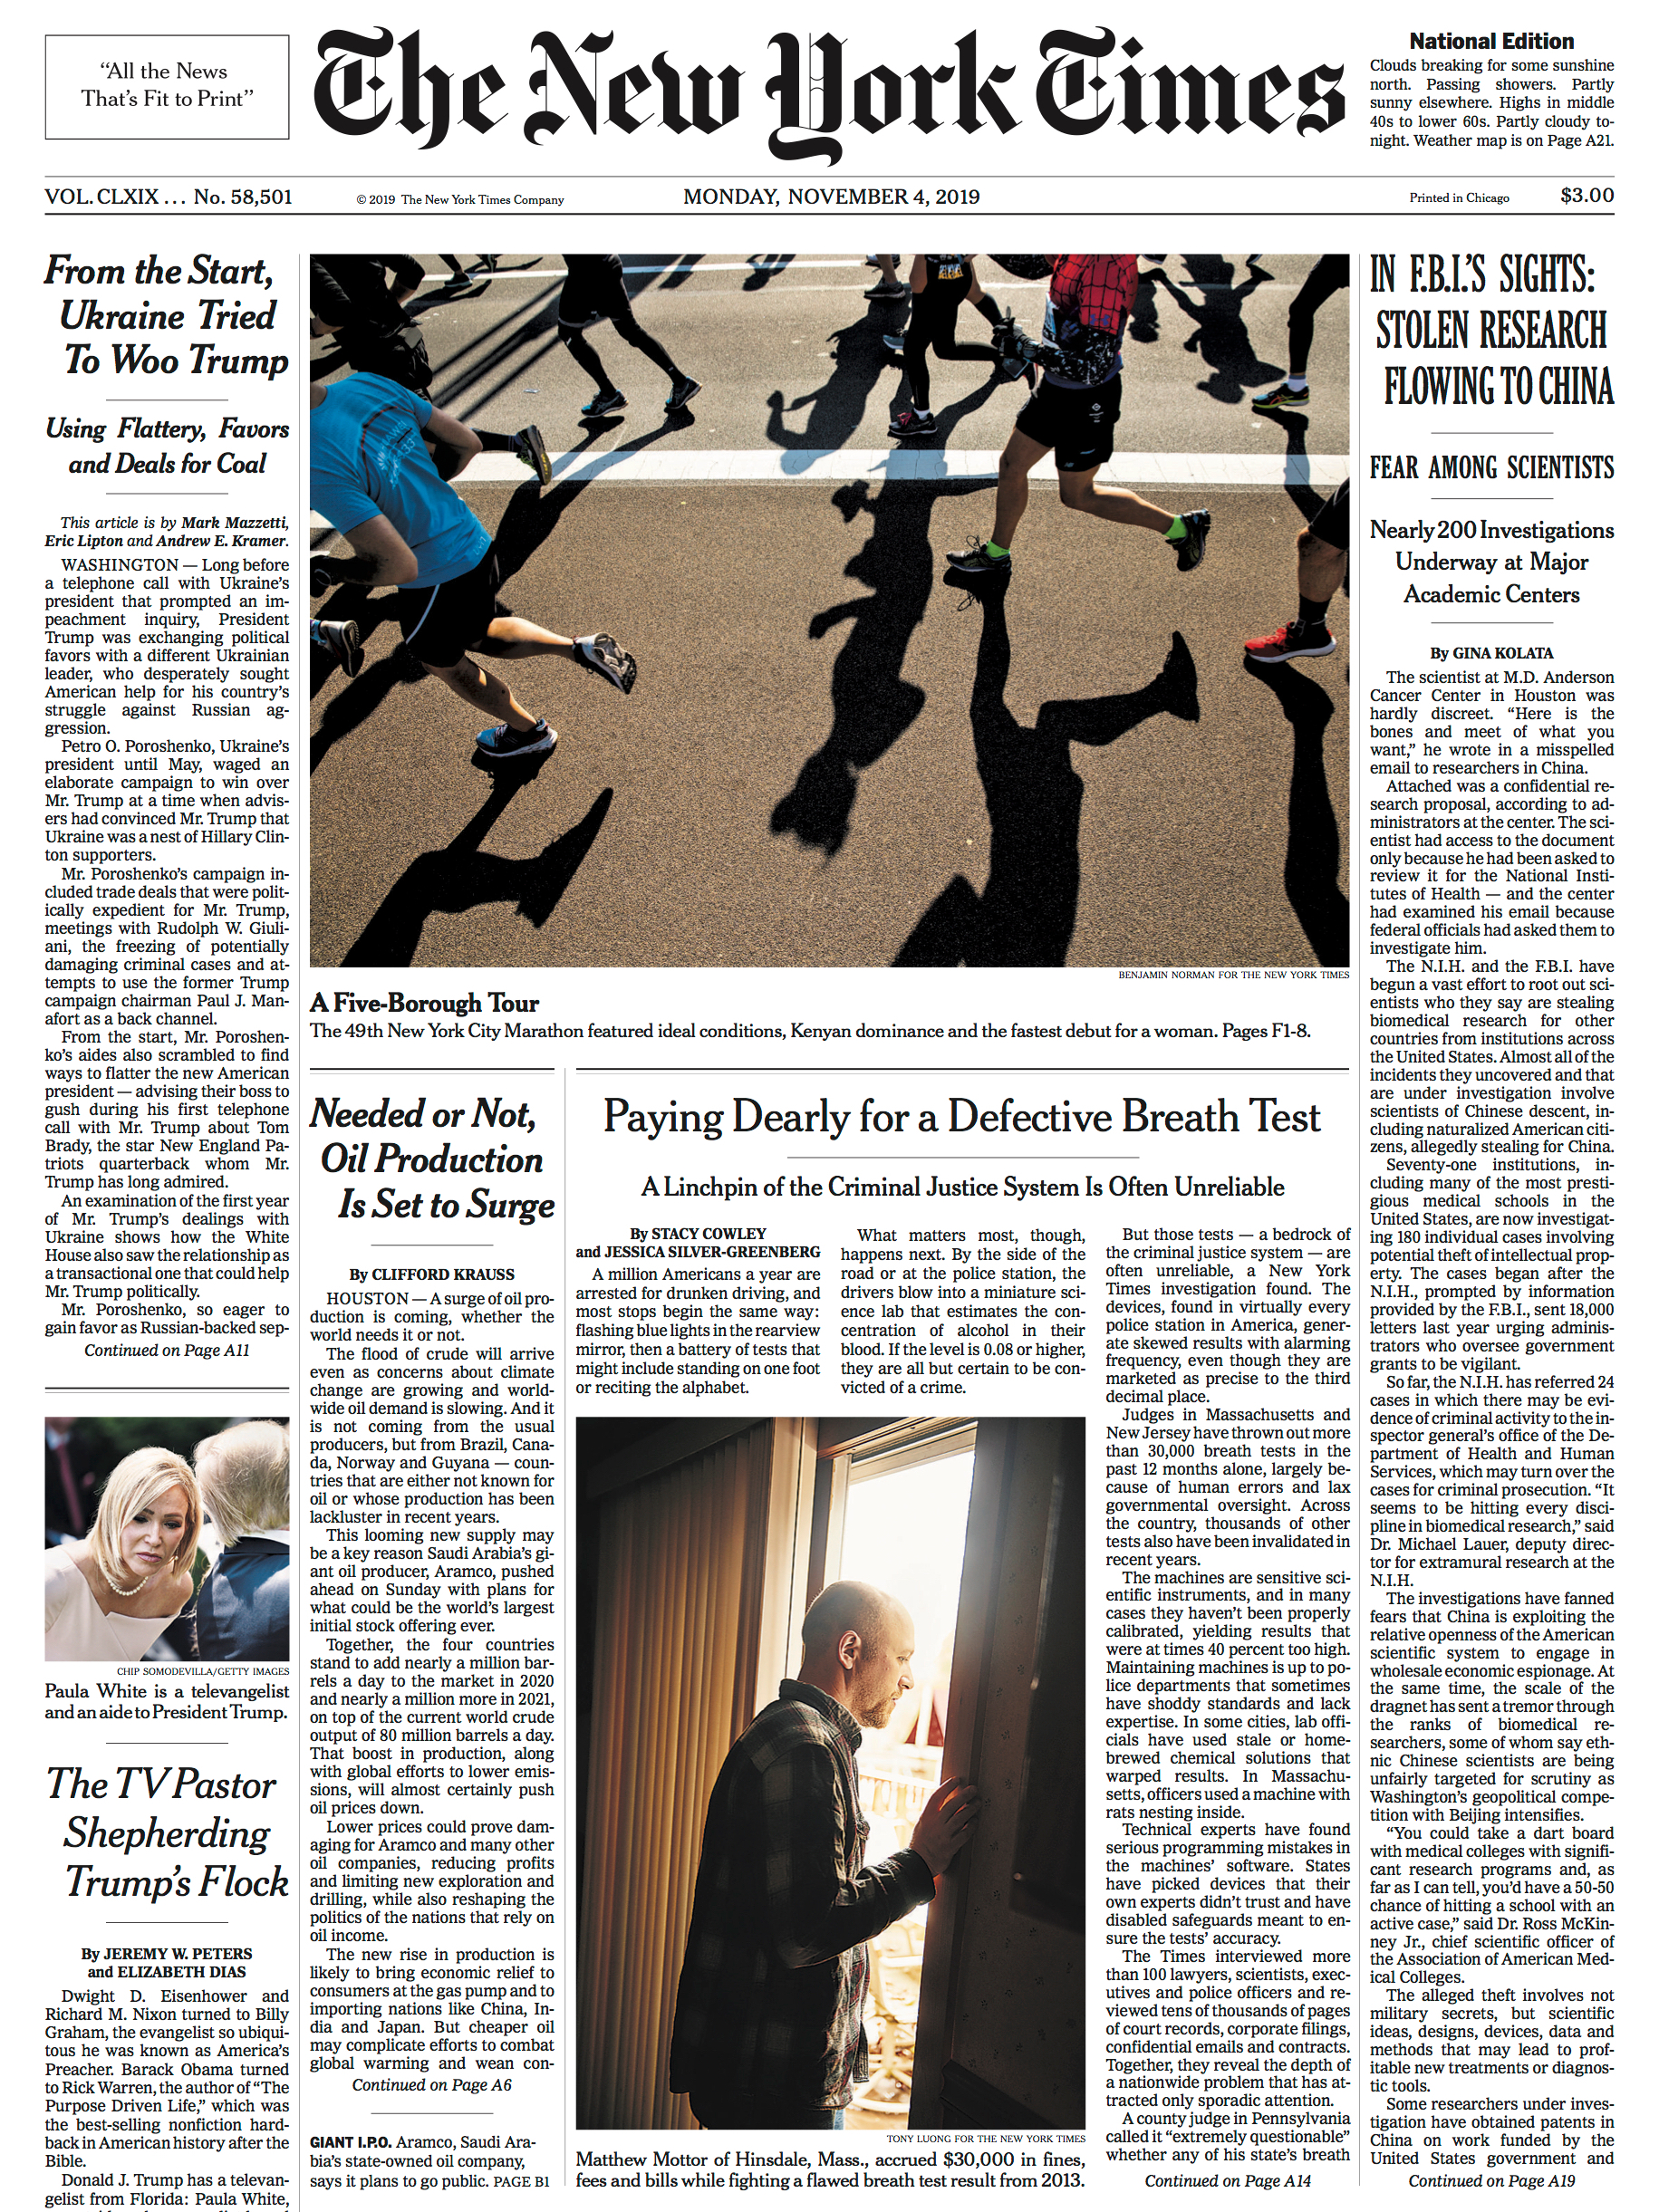 Ben Norman's New York marathon shot of runners in motion on the front page of The New York Times